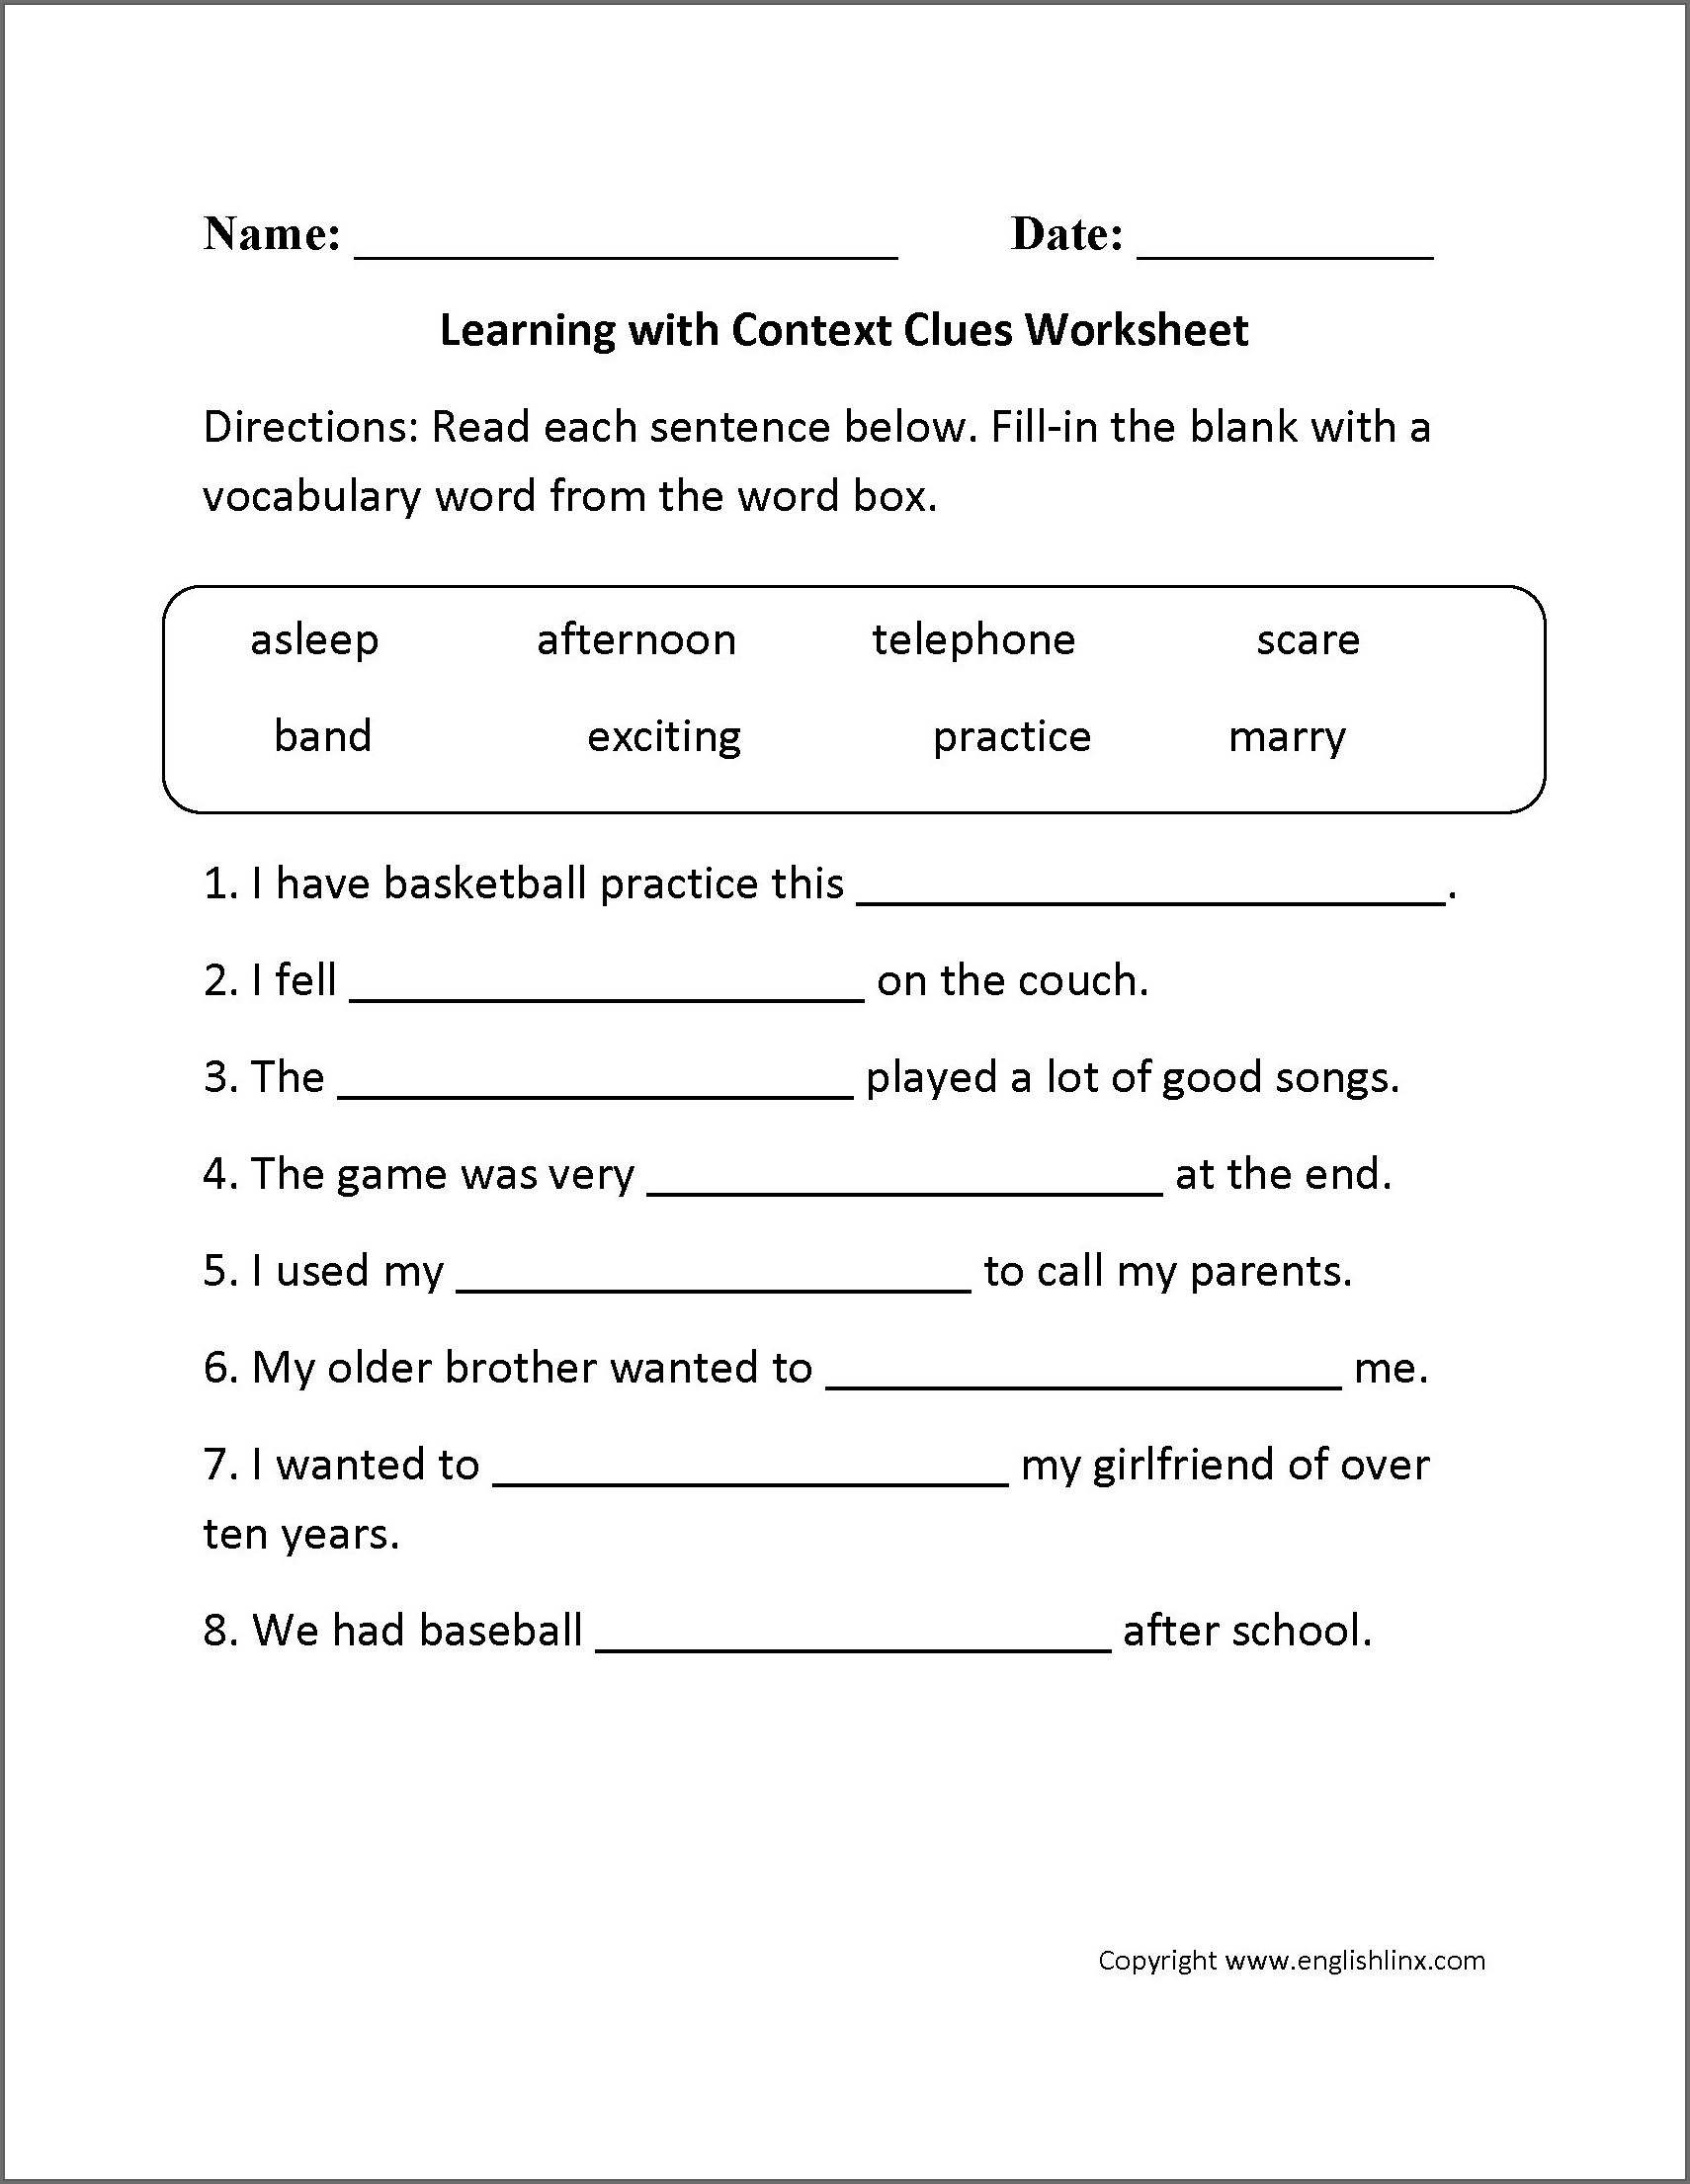 Ocean Worksheets for 2nd Grade 6th Grade Continents and Oceans Worksheets